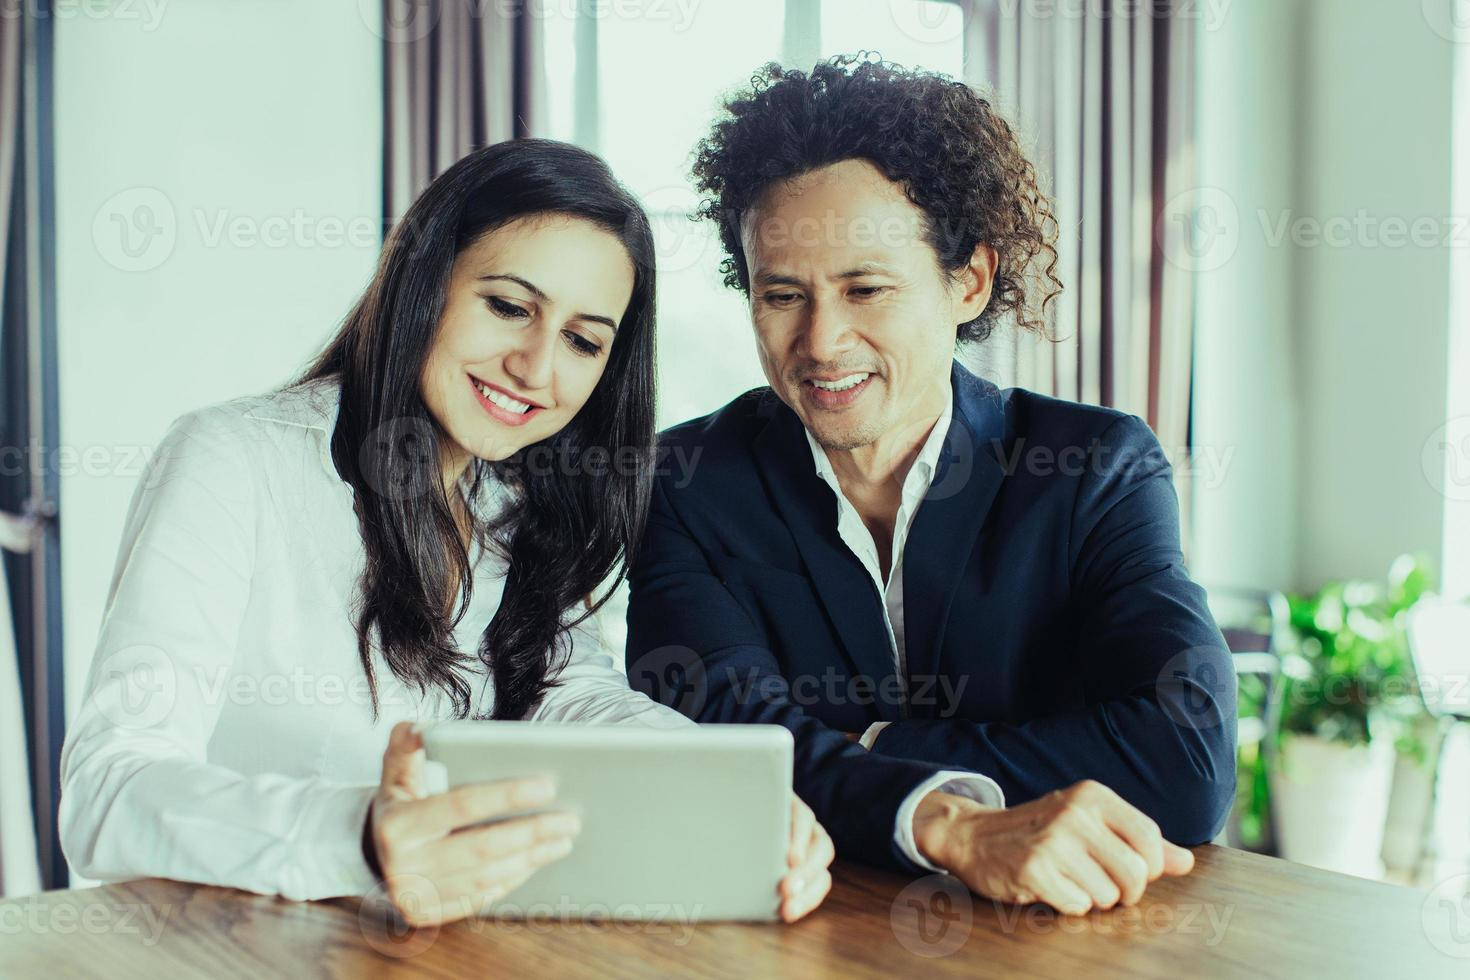 Cheerful business people discussing data on tablet photo